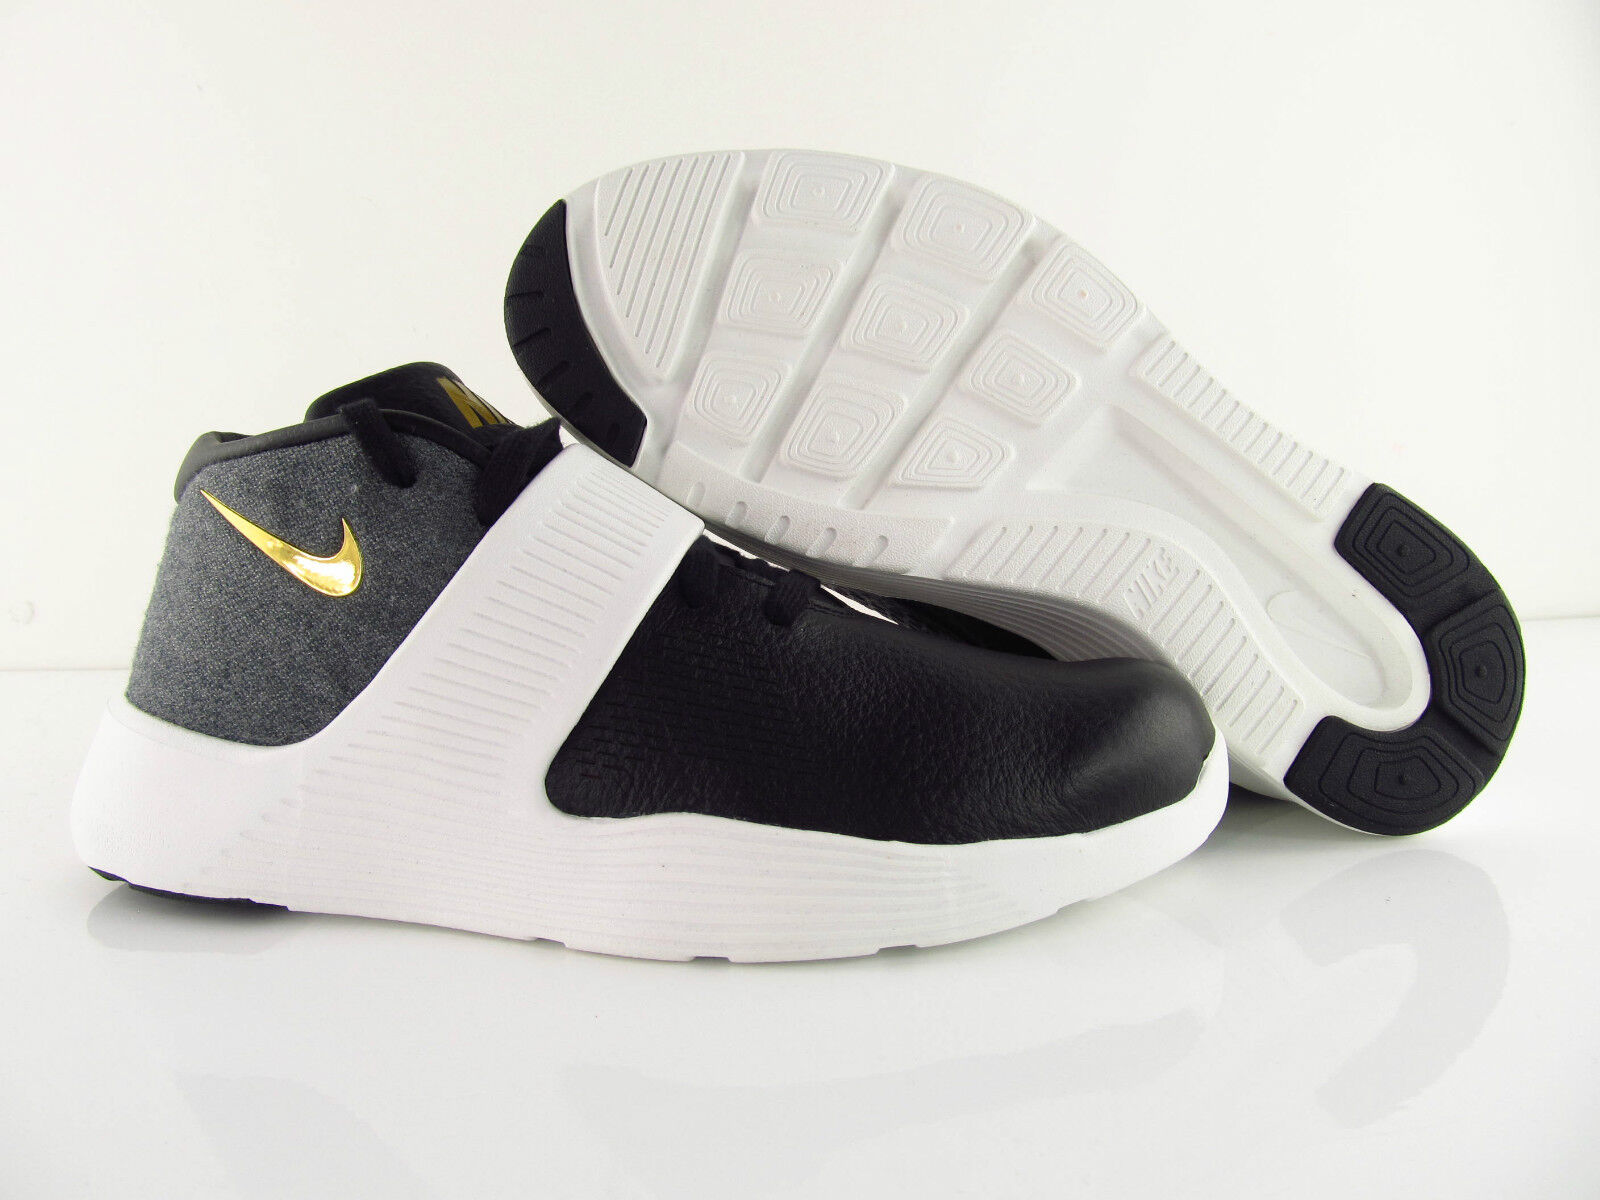 Nike Ultra XT Premium QS NFL 50th Superbowl Edition US_7.5 Eur_40.5